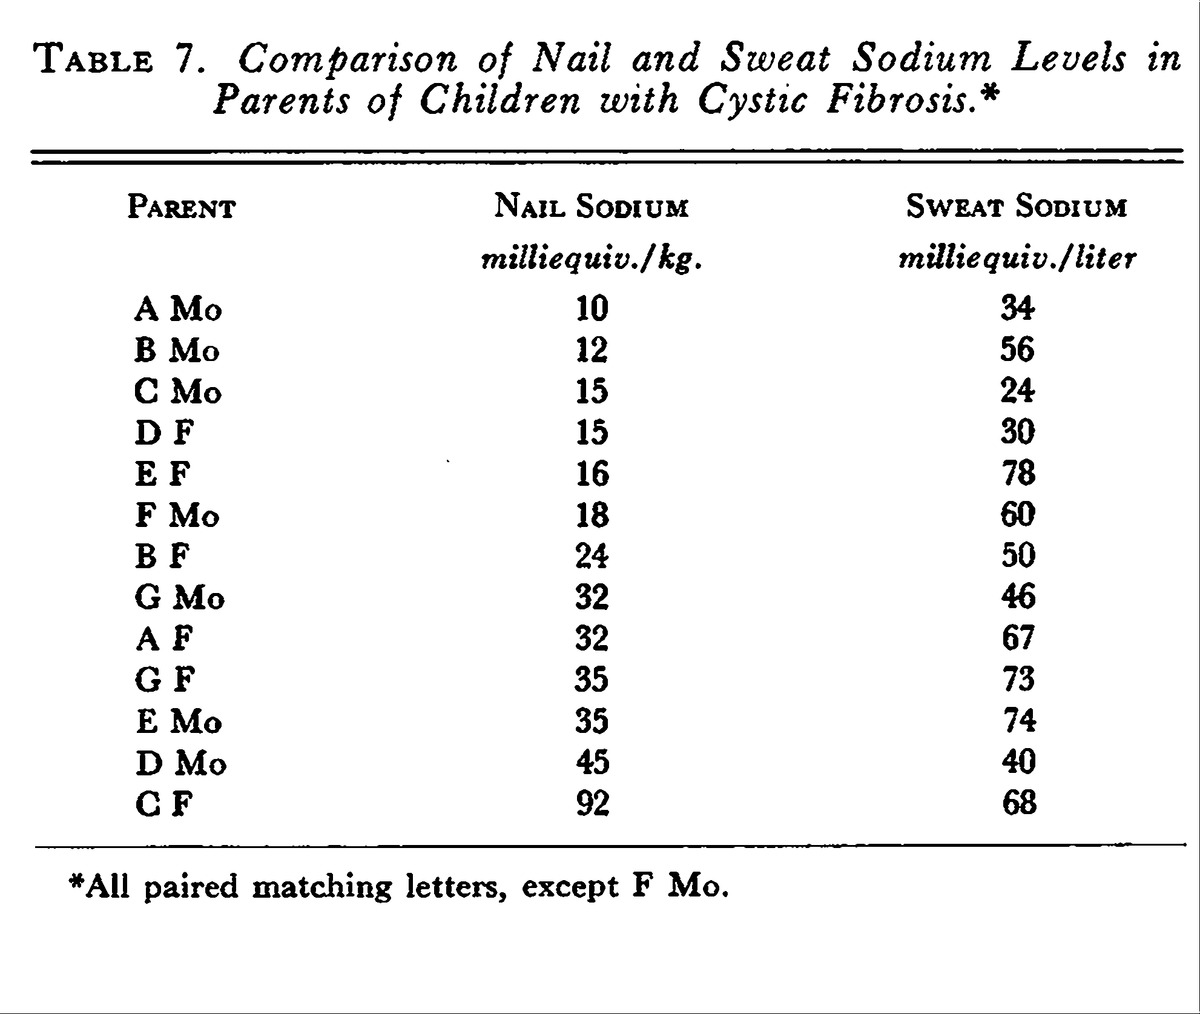 Studies in Cystic Fibrosis — Analysis of Nail Clippings for Sodium ...